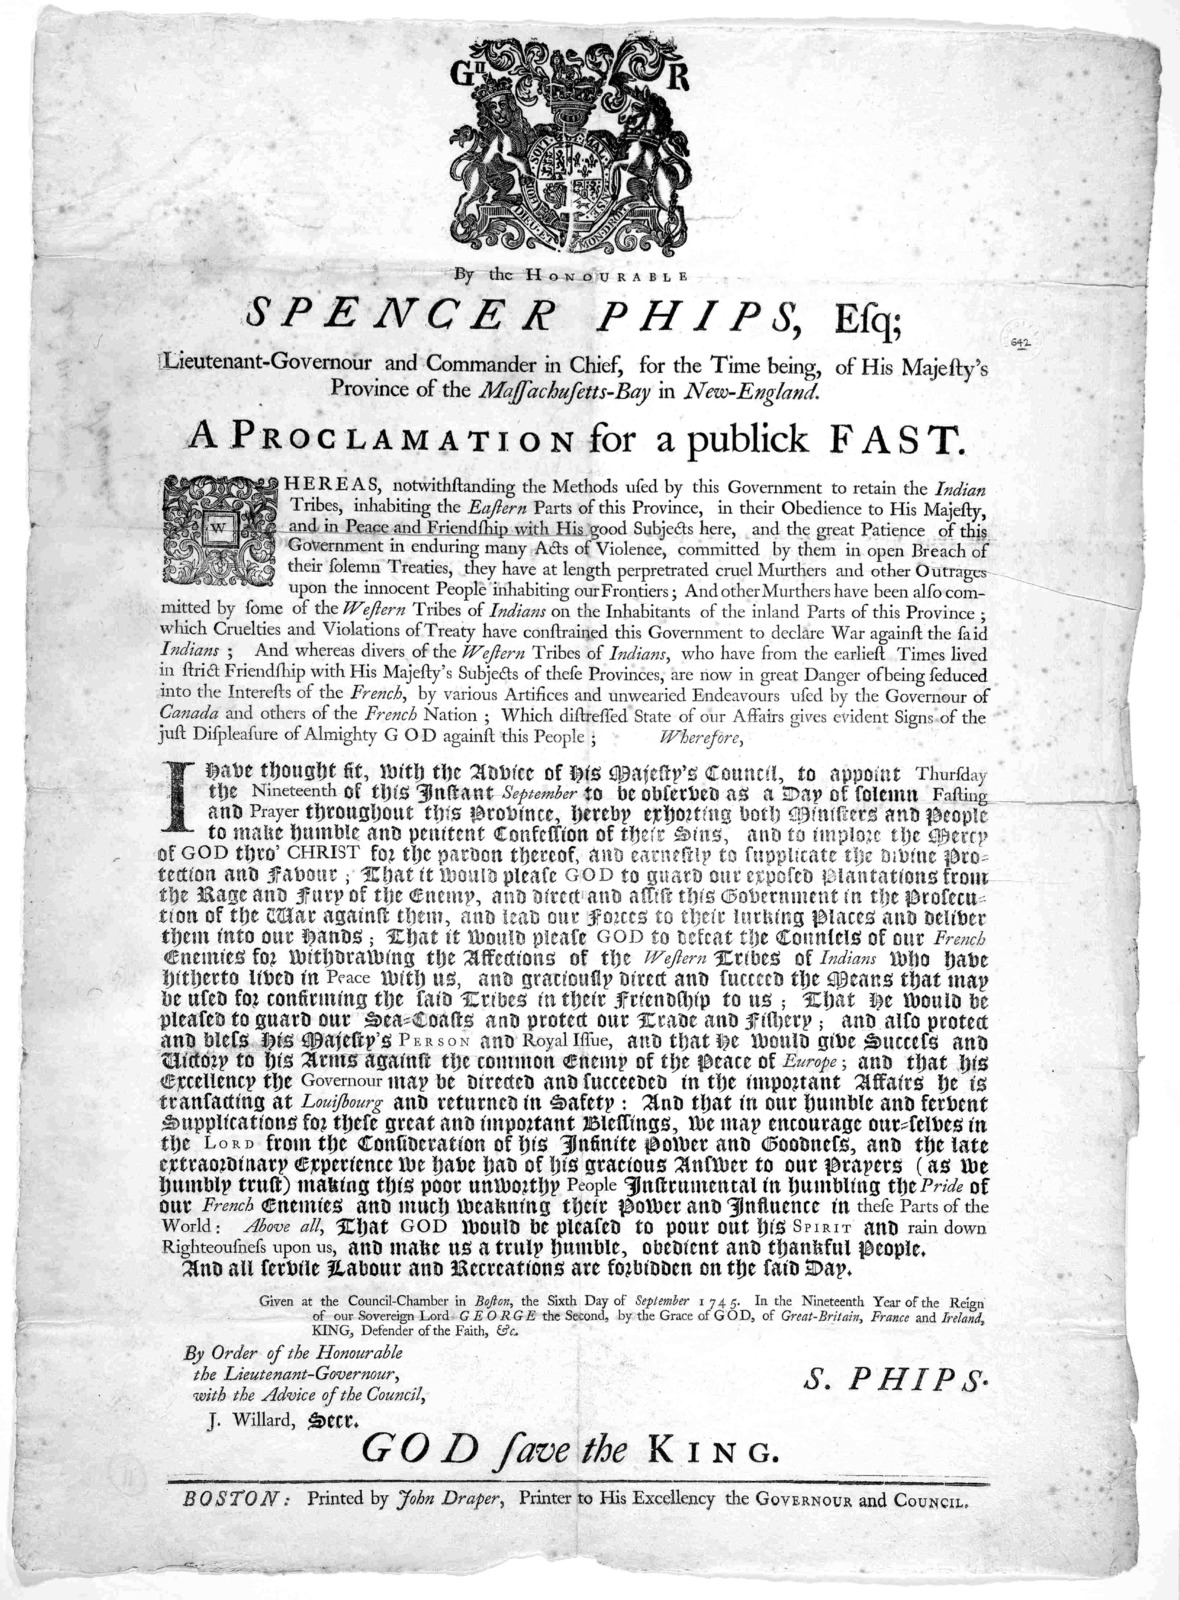 By the Honourable Spencer Phips, Esq; Lieutenant-Governour and commander in chief, for the Massachusetts-Bay in New-England. A proclamation for a publick fast … I have thought fit … to appoint Thursday the nineteenth of this instant September to